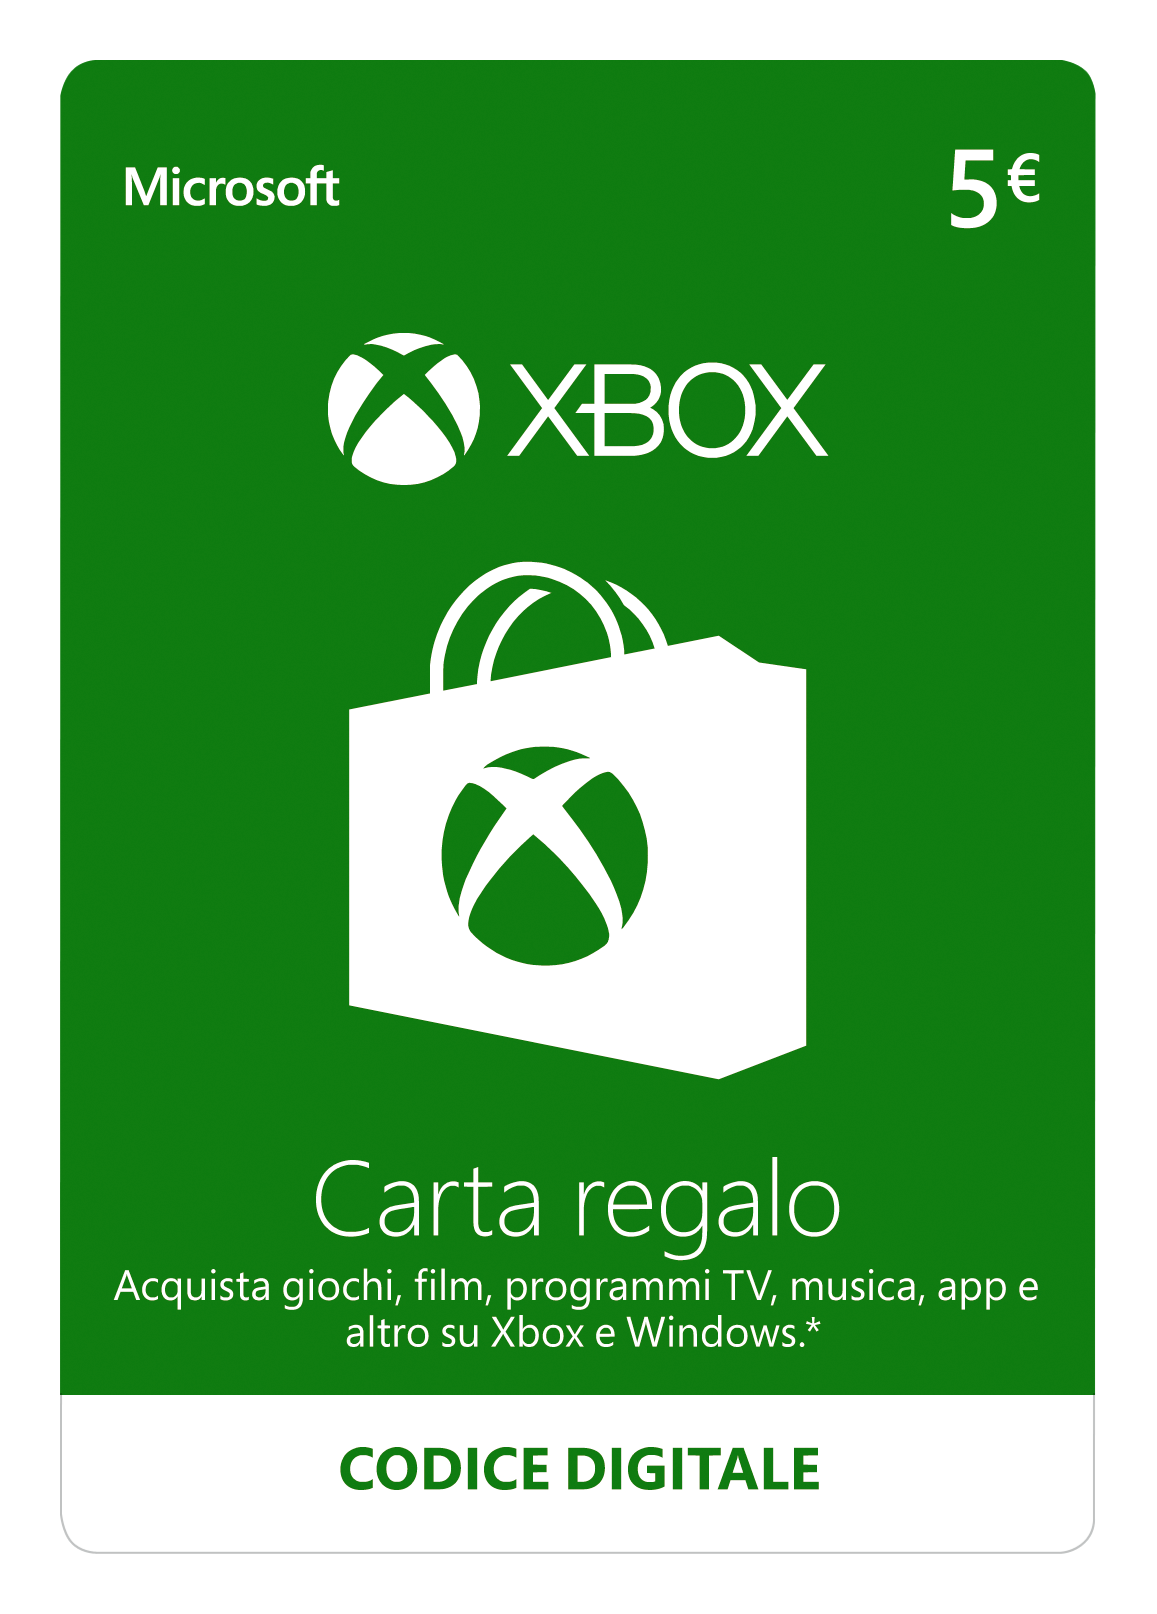 xbox-live-5-eur-carta-regalo-codice-digital-pc-game-code